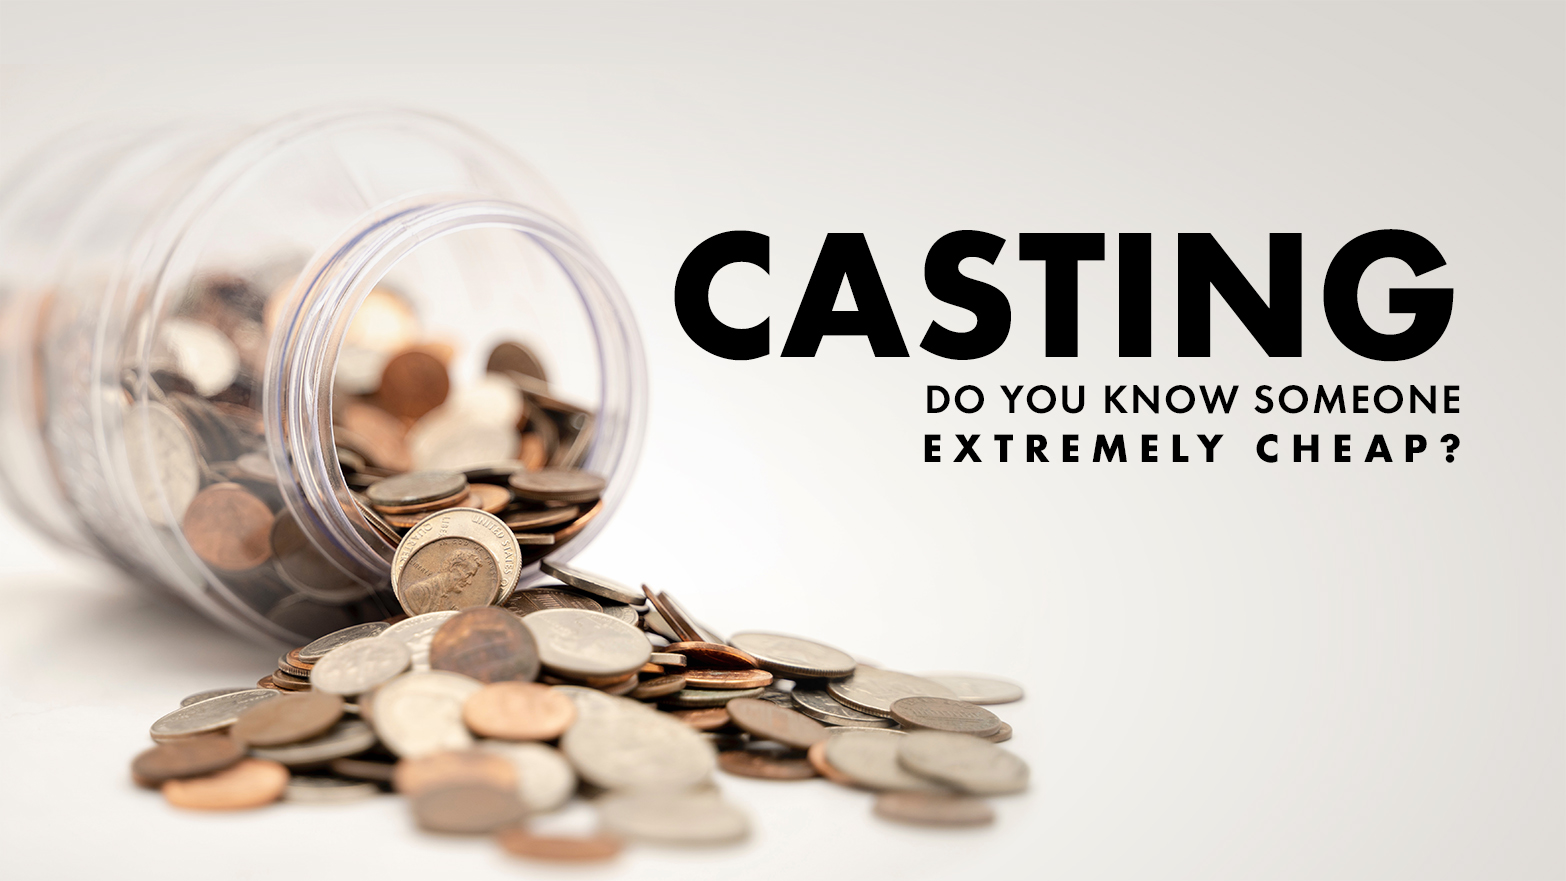 Casting: Do you know someone extremely cheap?